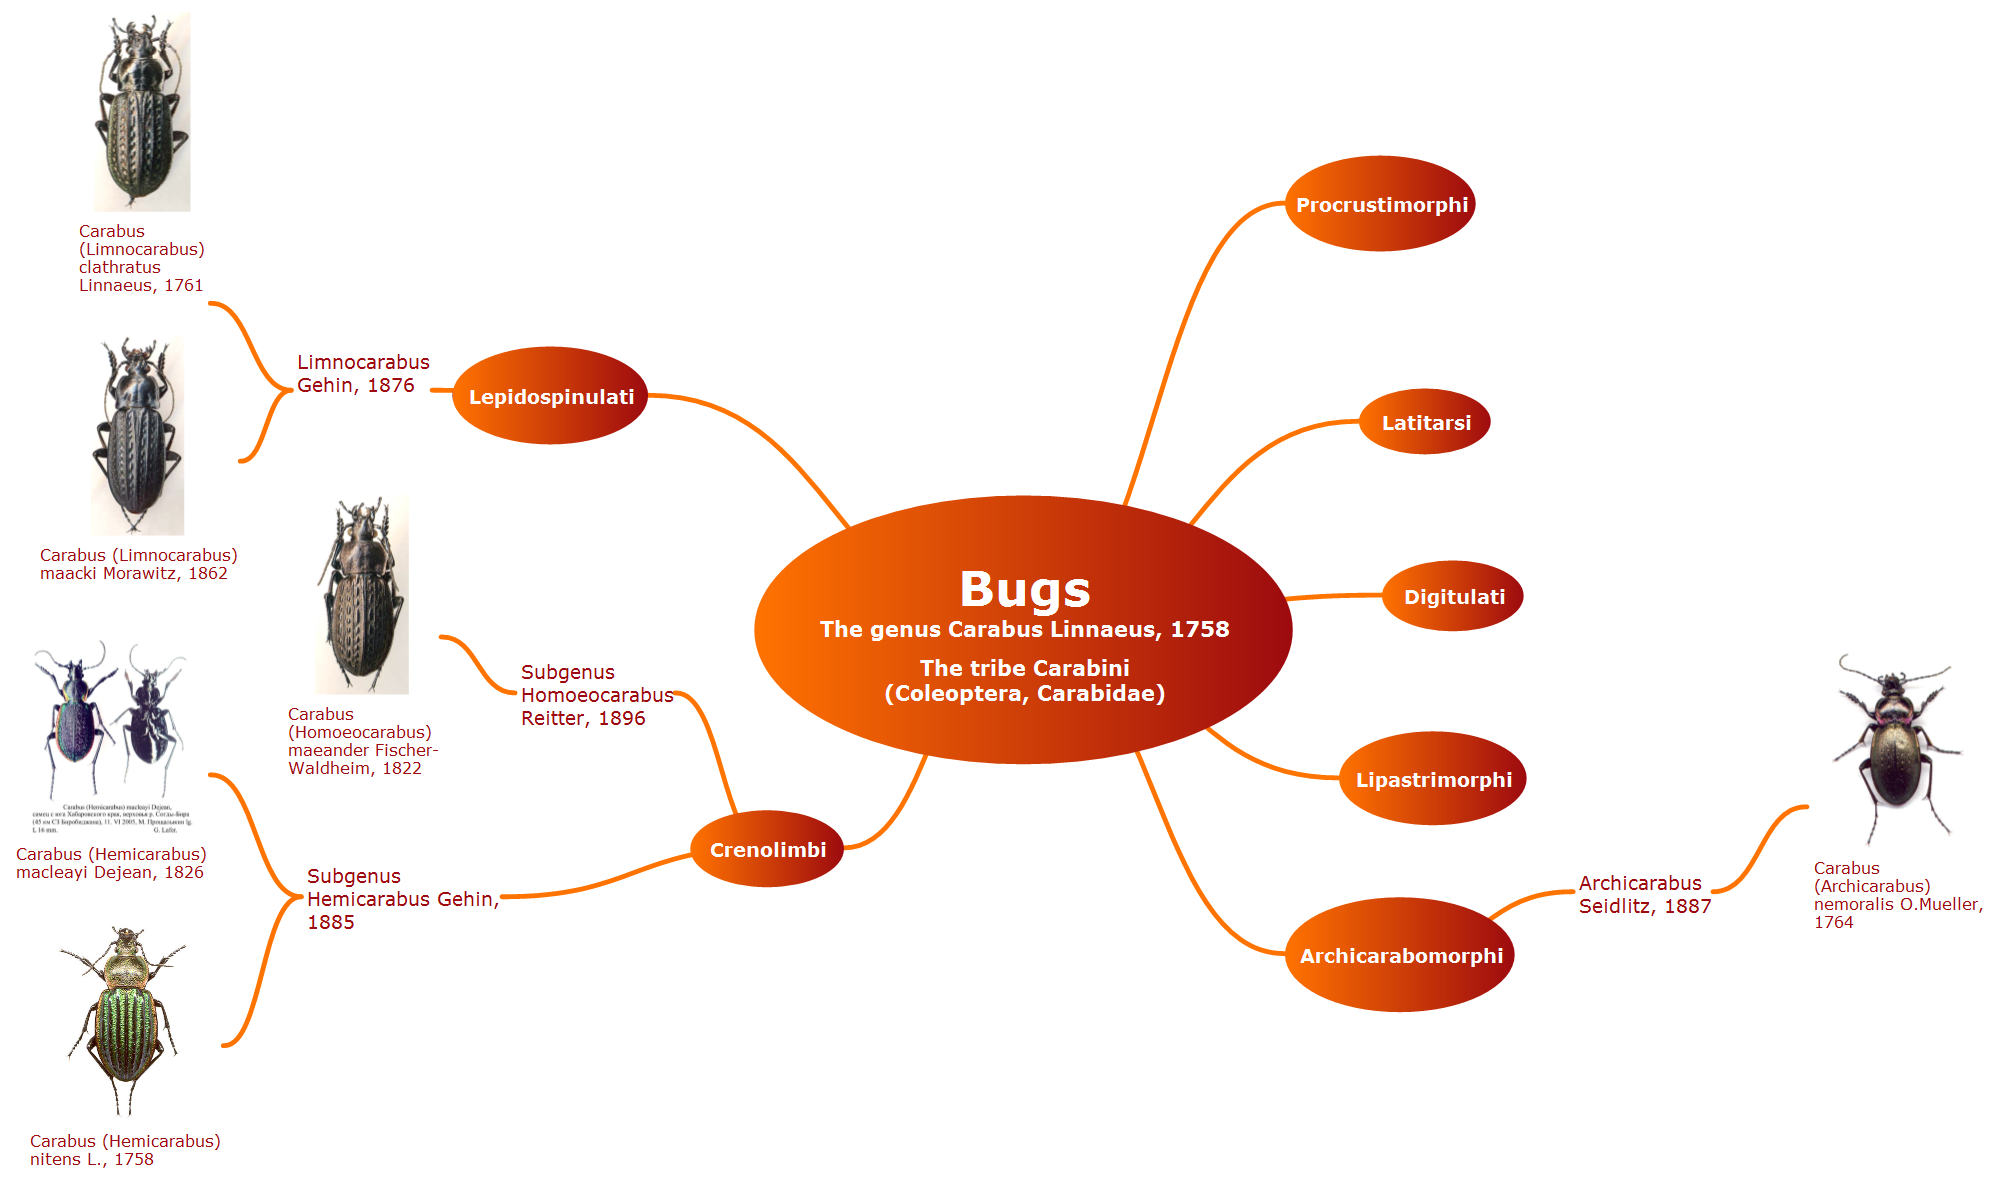 Conceptdraw samples science and education biology mind map for conceptdraw samples science and education biology ccuart Images